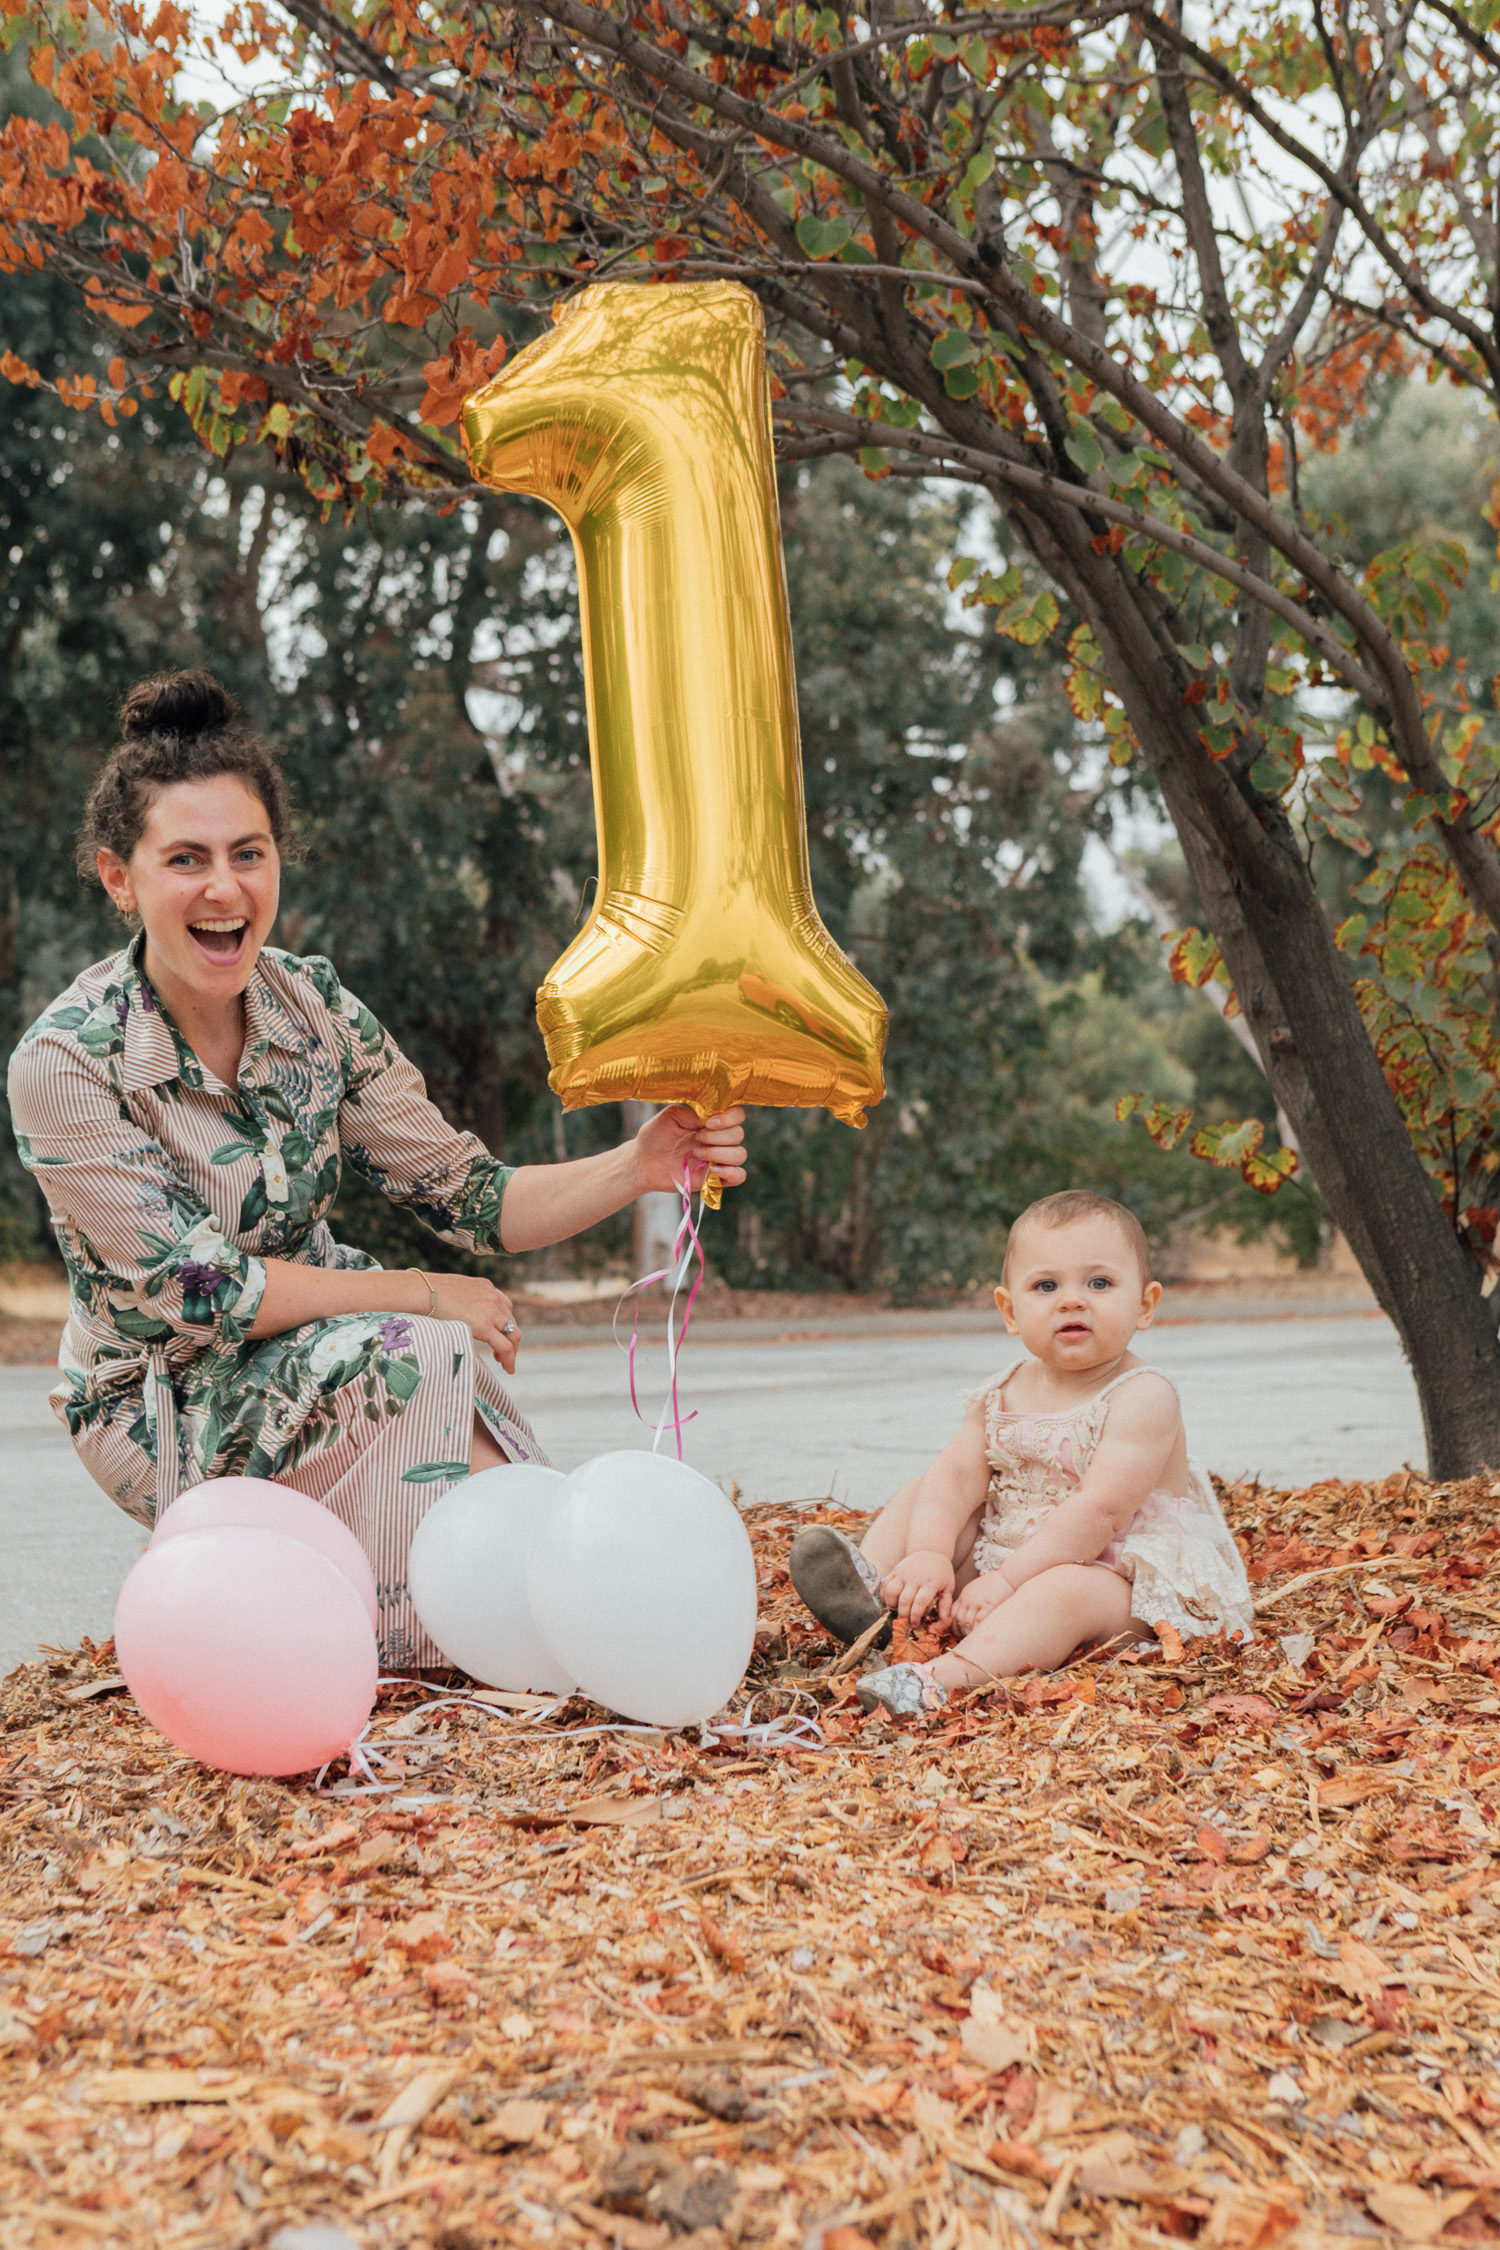 Los Angeles mom blogger, RELish By Arielle shares photos from her daughter, Sadie's first birthday